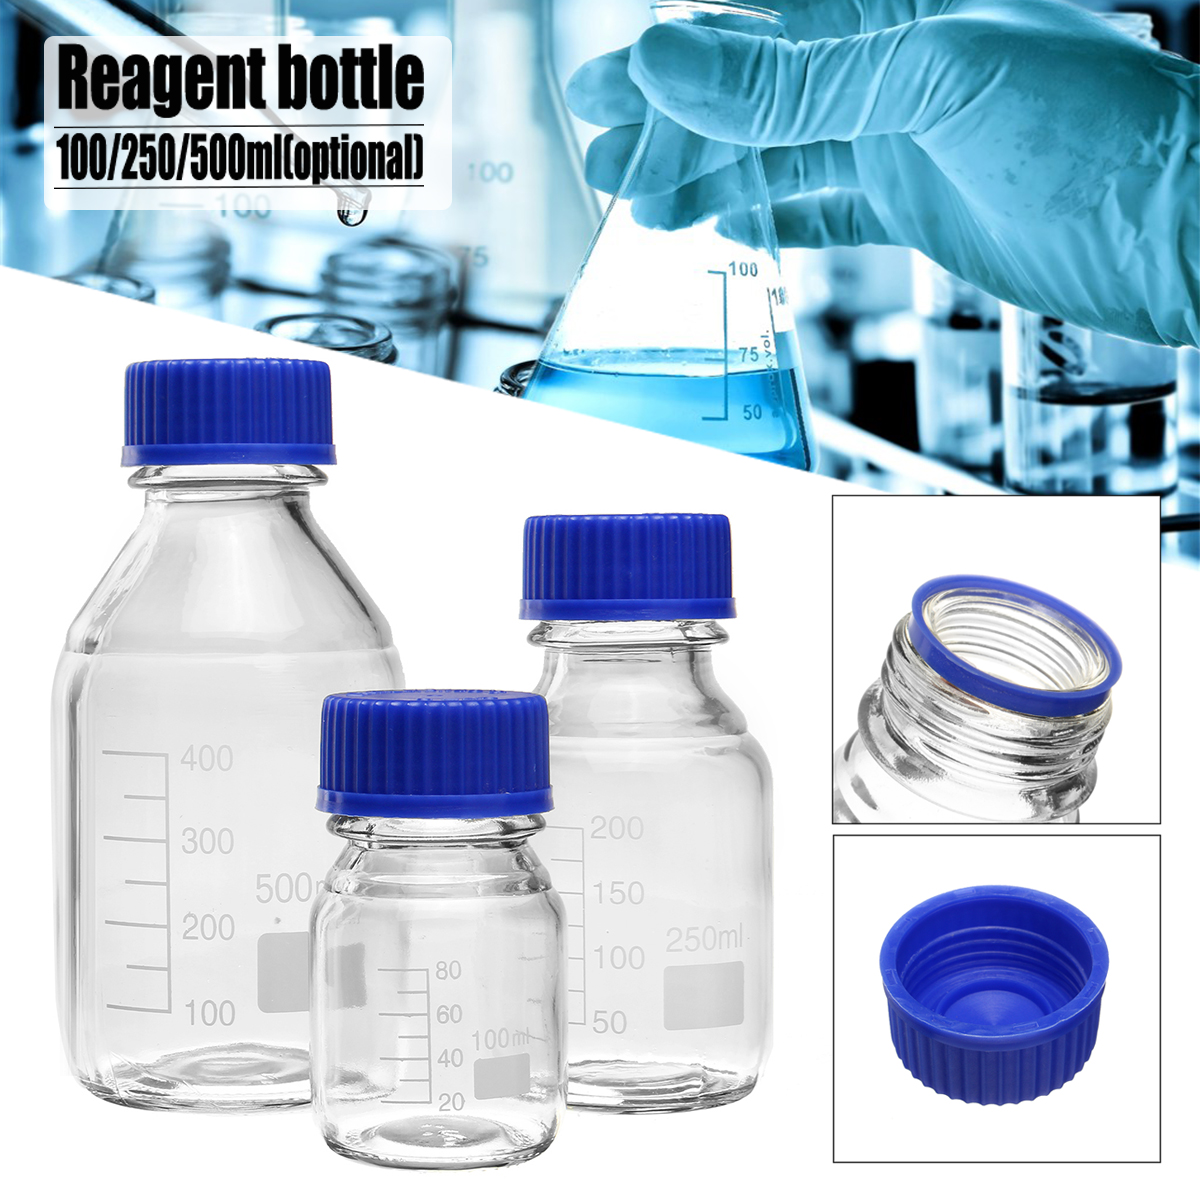 100/250/500mL Borosilicate Glass Clear Reagent Bottle Blue Screw Cap Lab Medical Storage Bottle